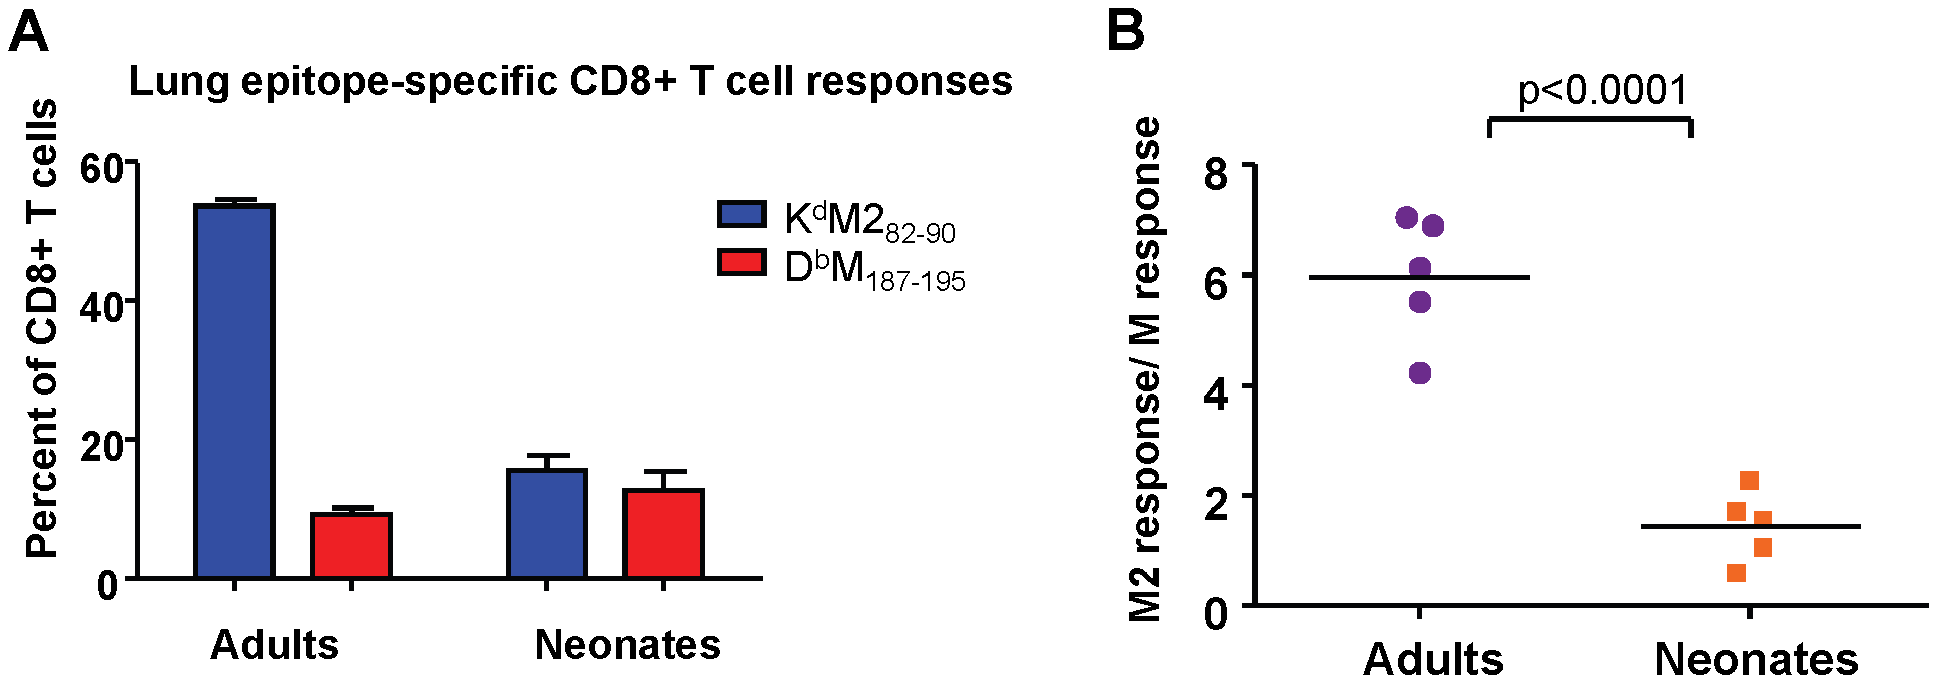 Epitope-specific CD8+ T cell responses following infection with rAd5-MM2.